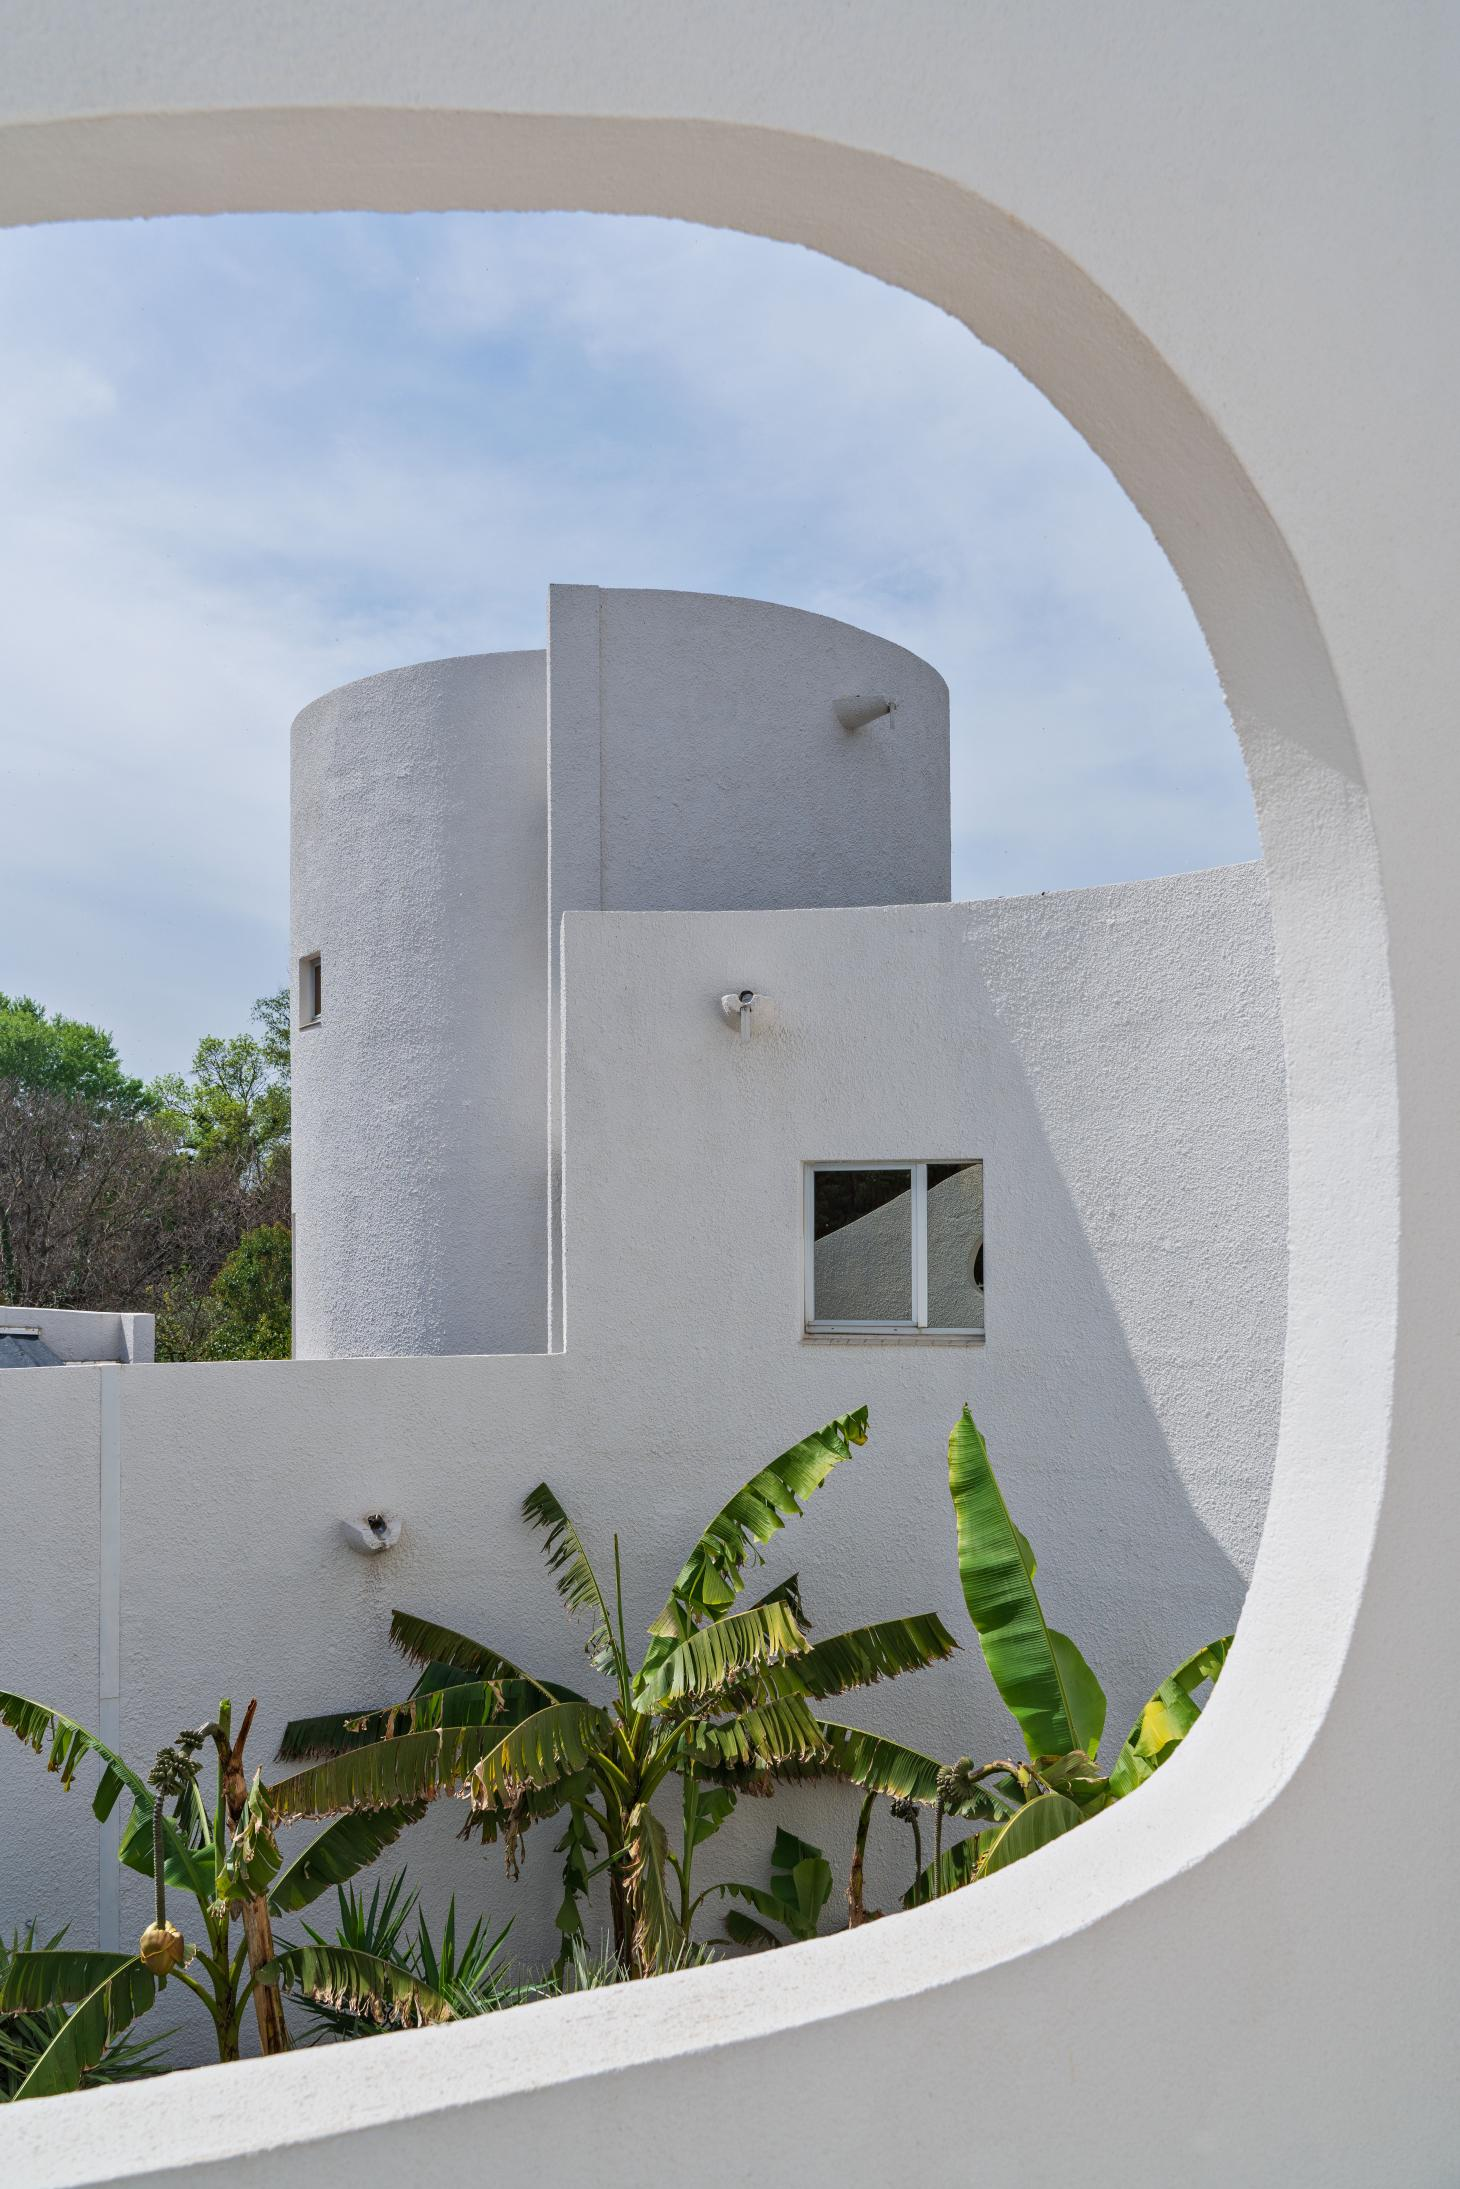 The white modernist architecture of Villa Benkemoun framed by palm trees and blue sky